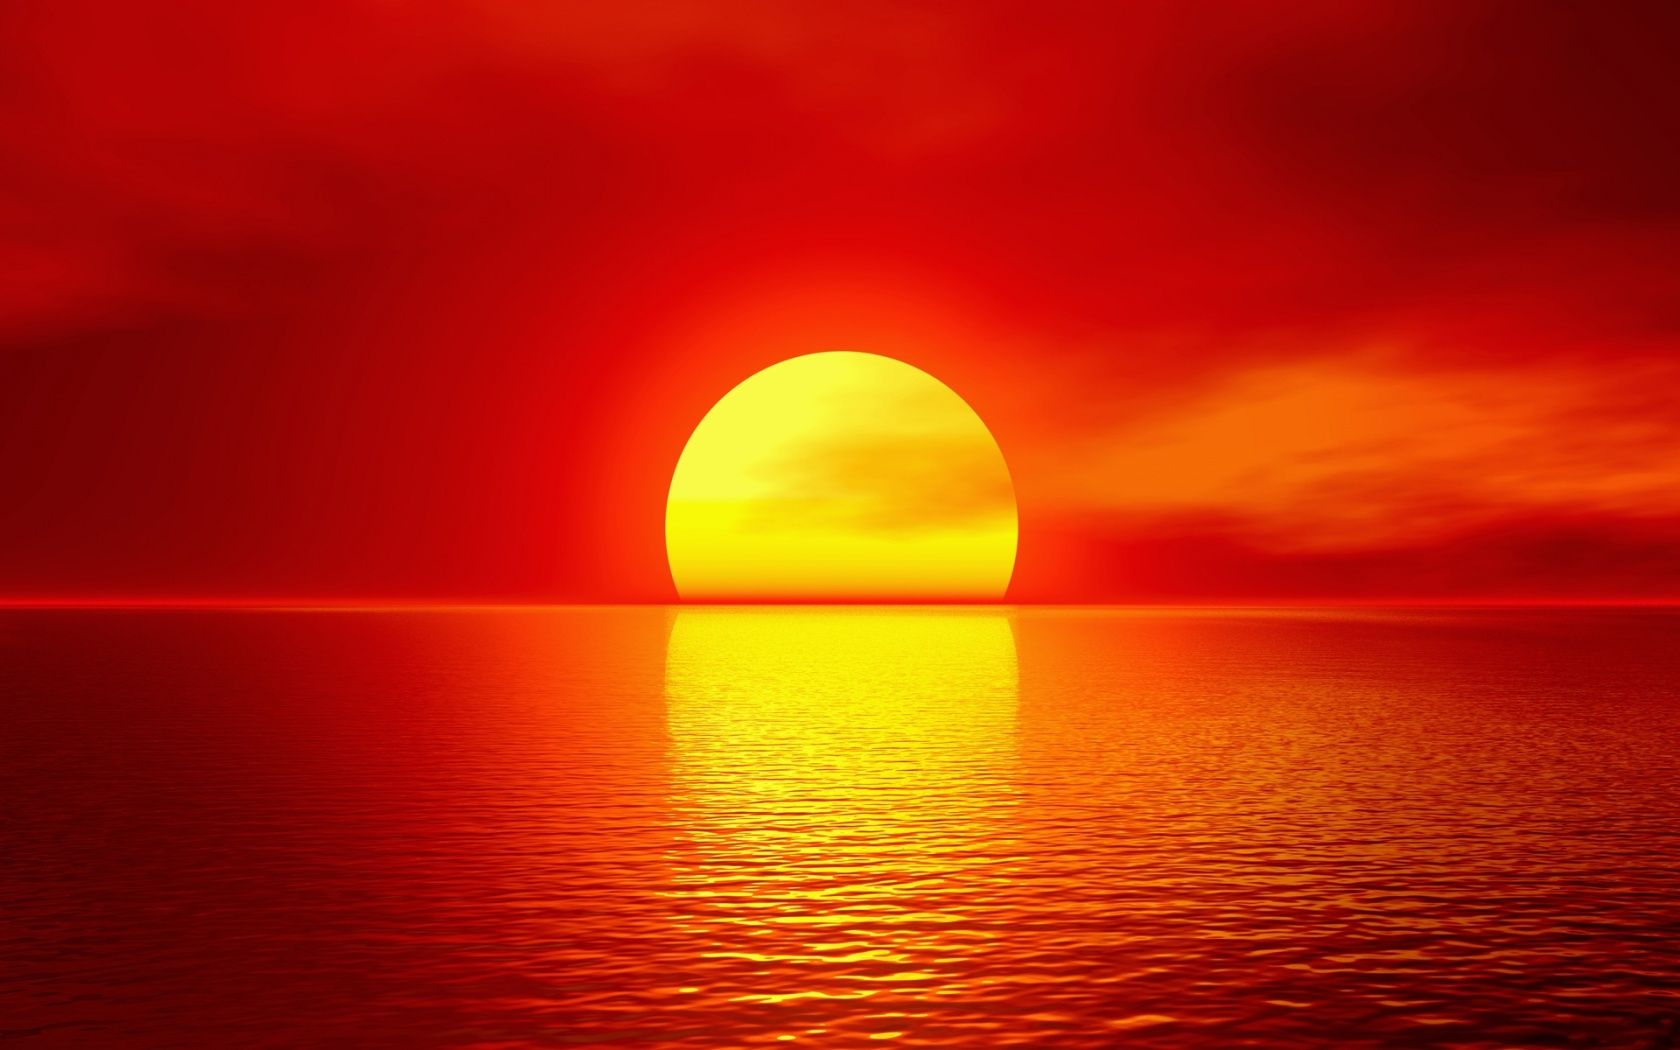 Sun Images 1680x1050 Beauty Of Red Sun Wallpaper And Stock